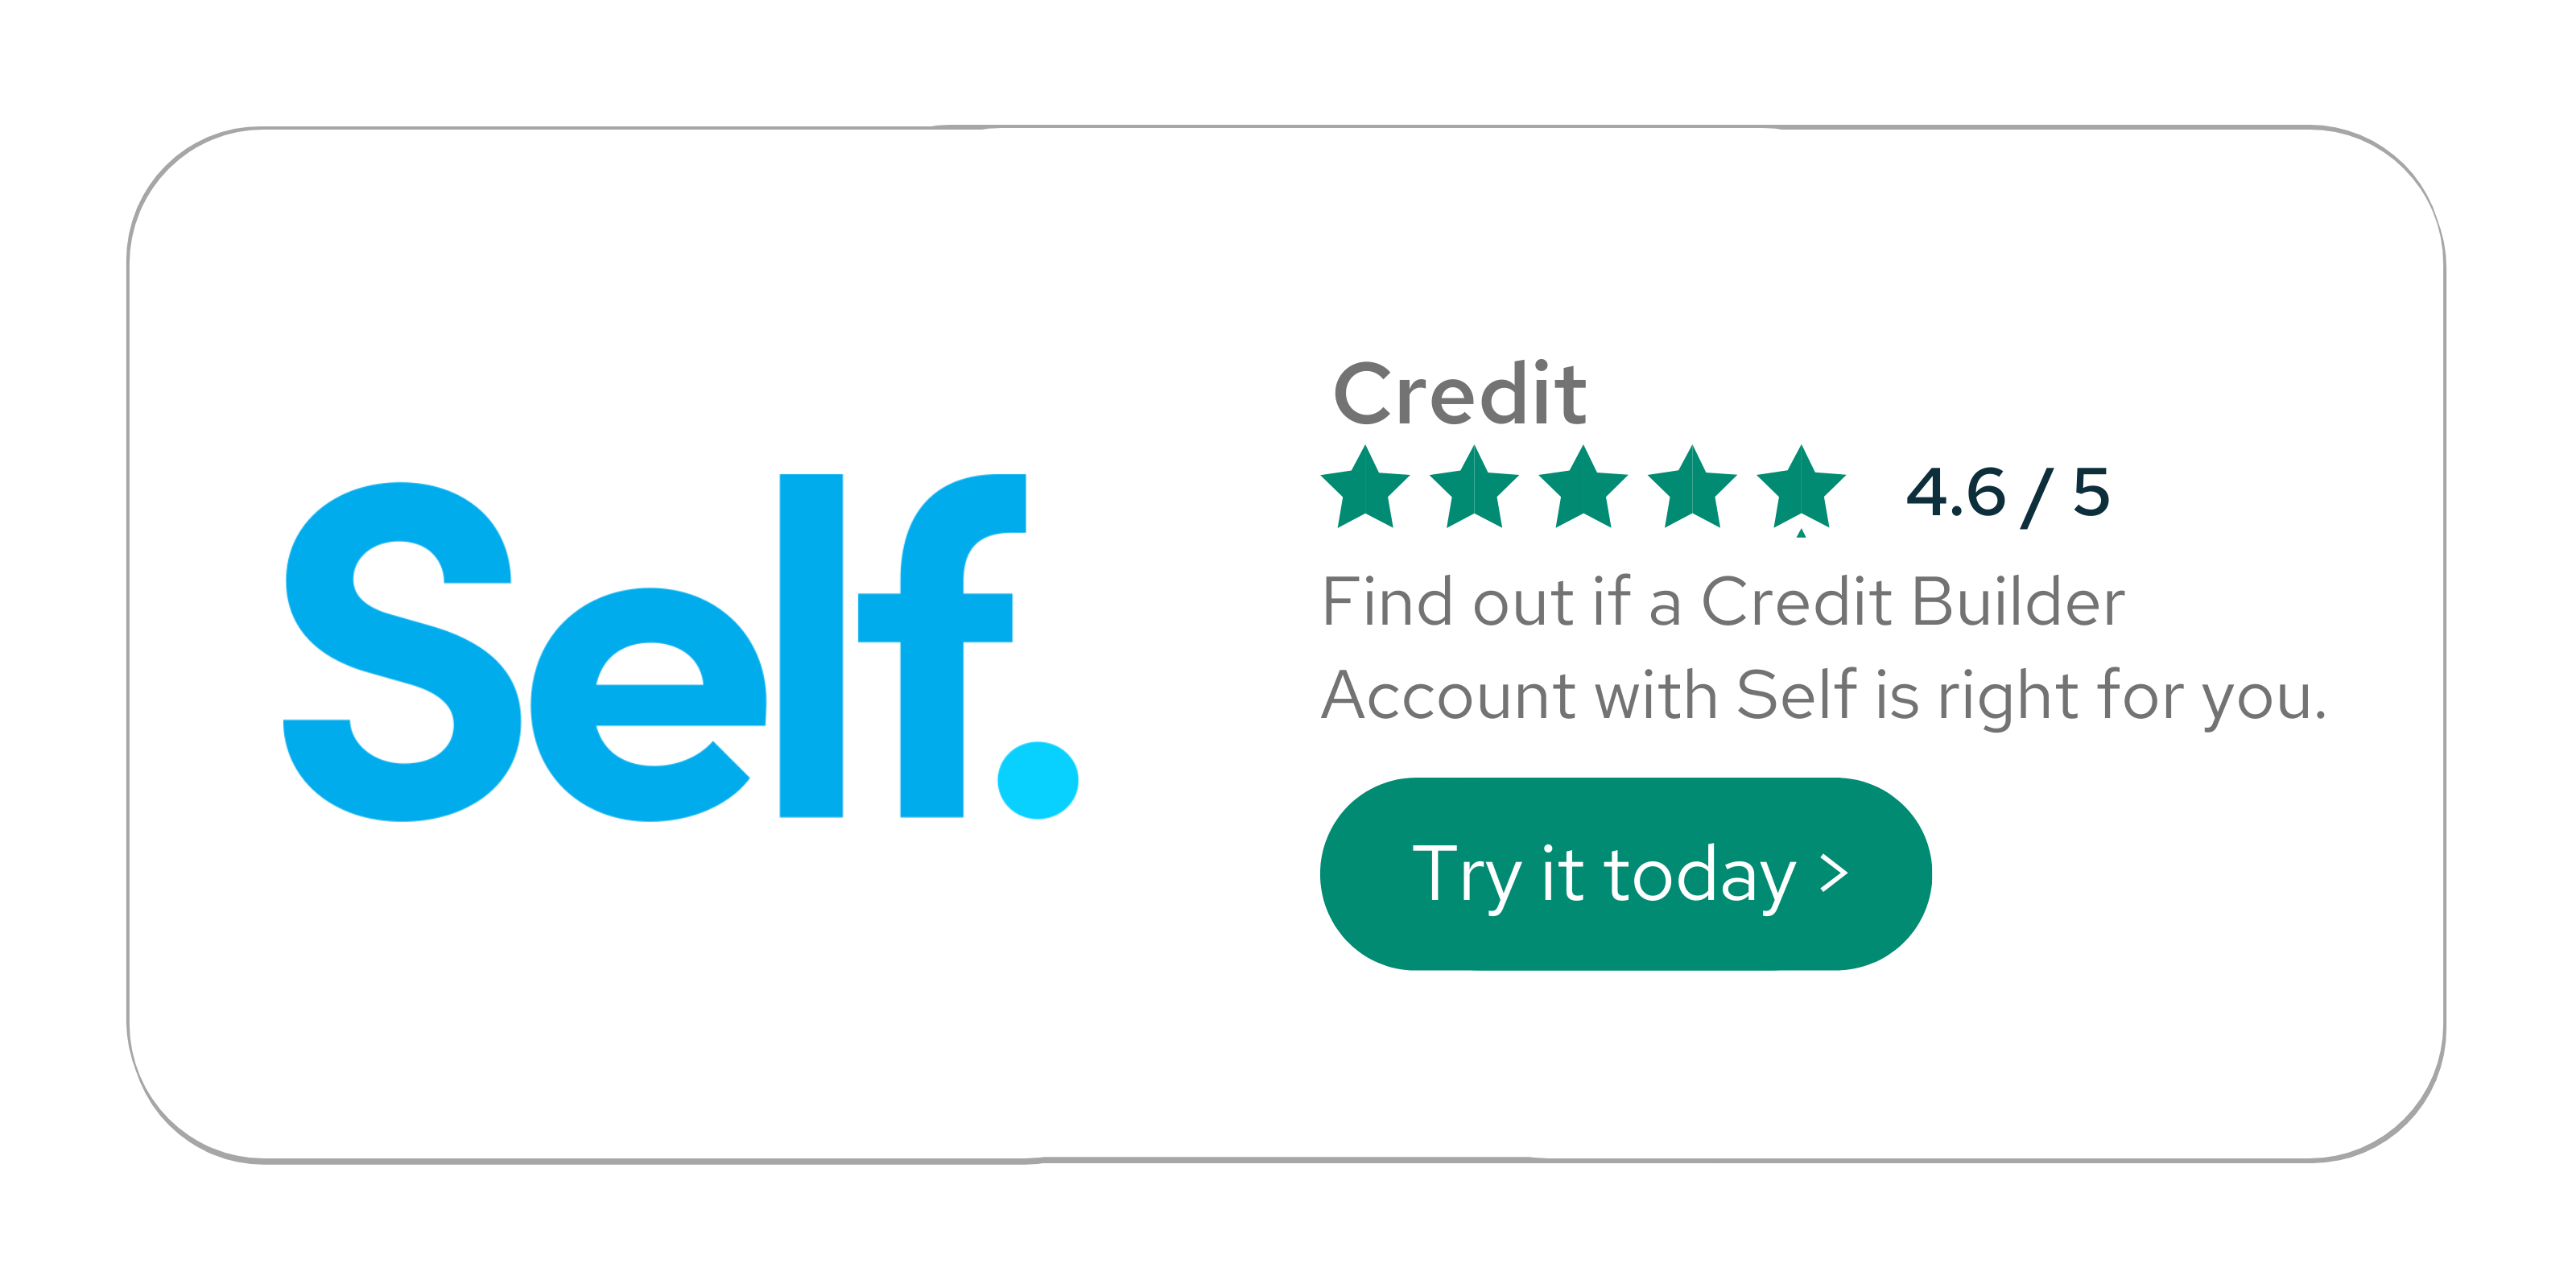 Self lender - try it today for yourself